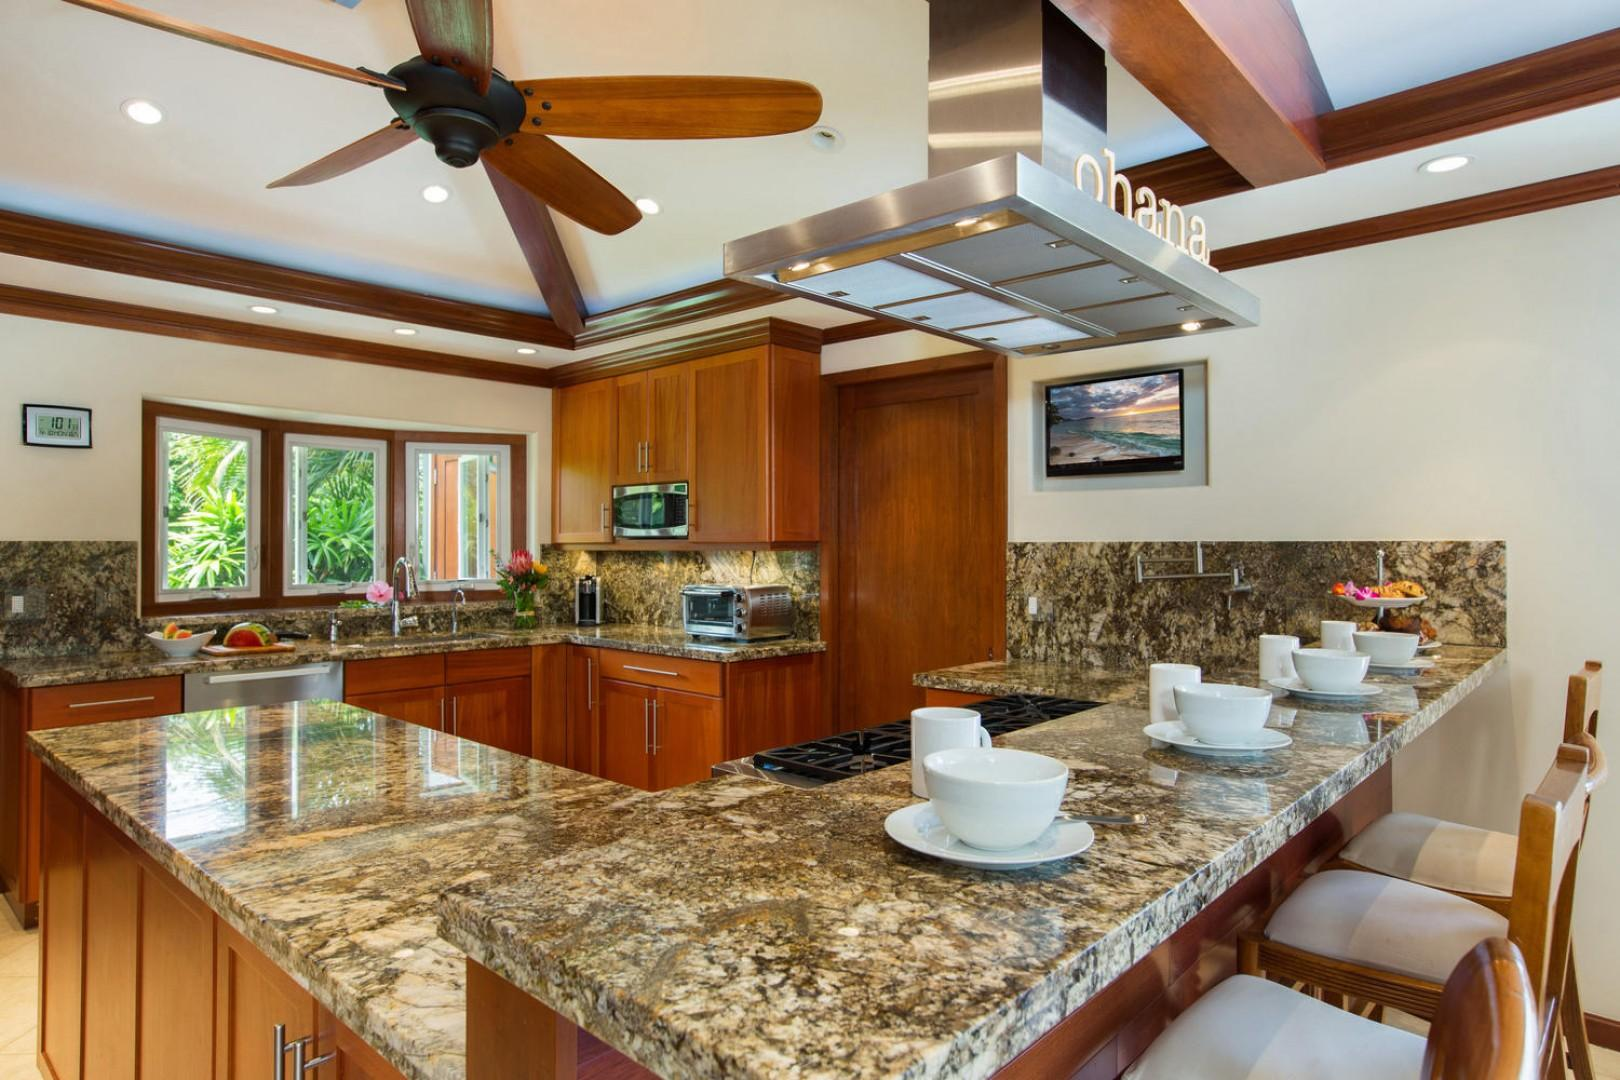 Gourmet kitchen complete with high-end appliances and a dual-fuel six-burner gas oven.